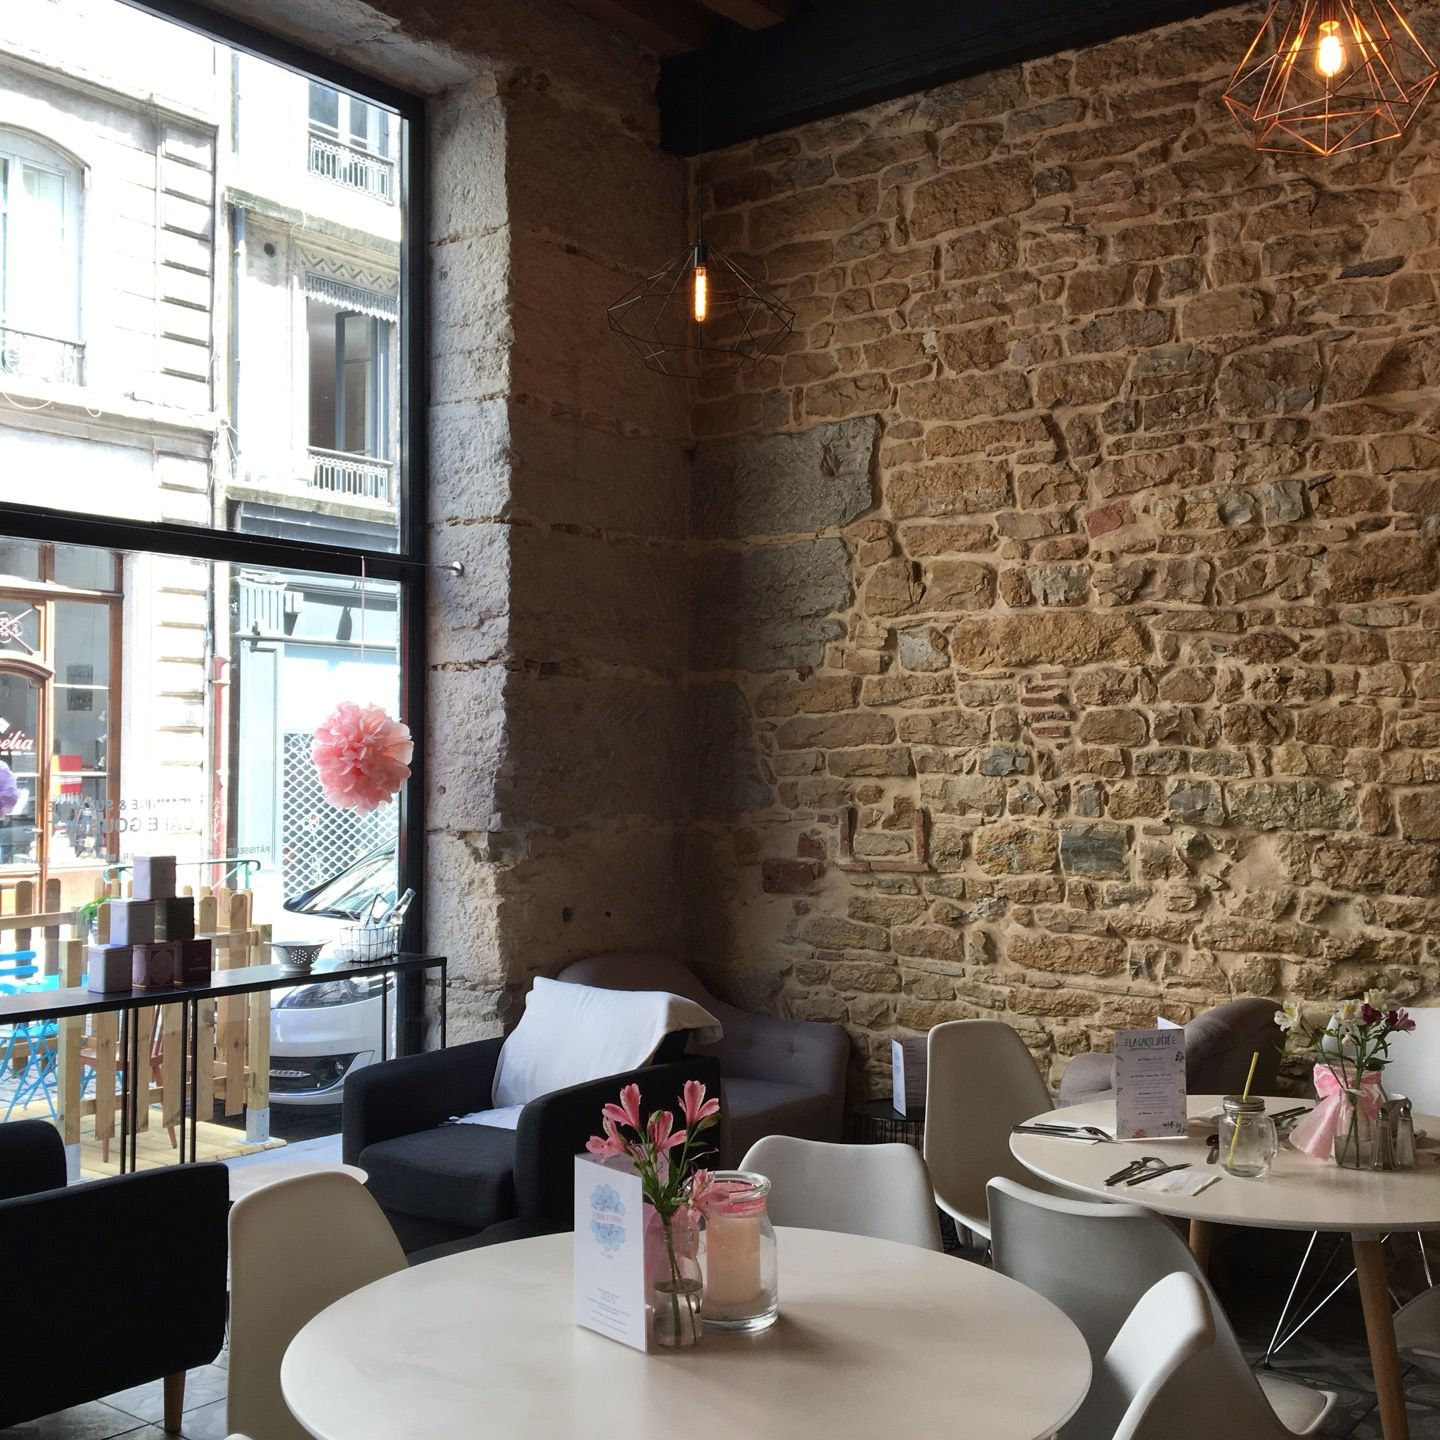 The 20 best boutique hotels in Lyon – BoutiqueHotel me